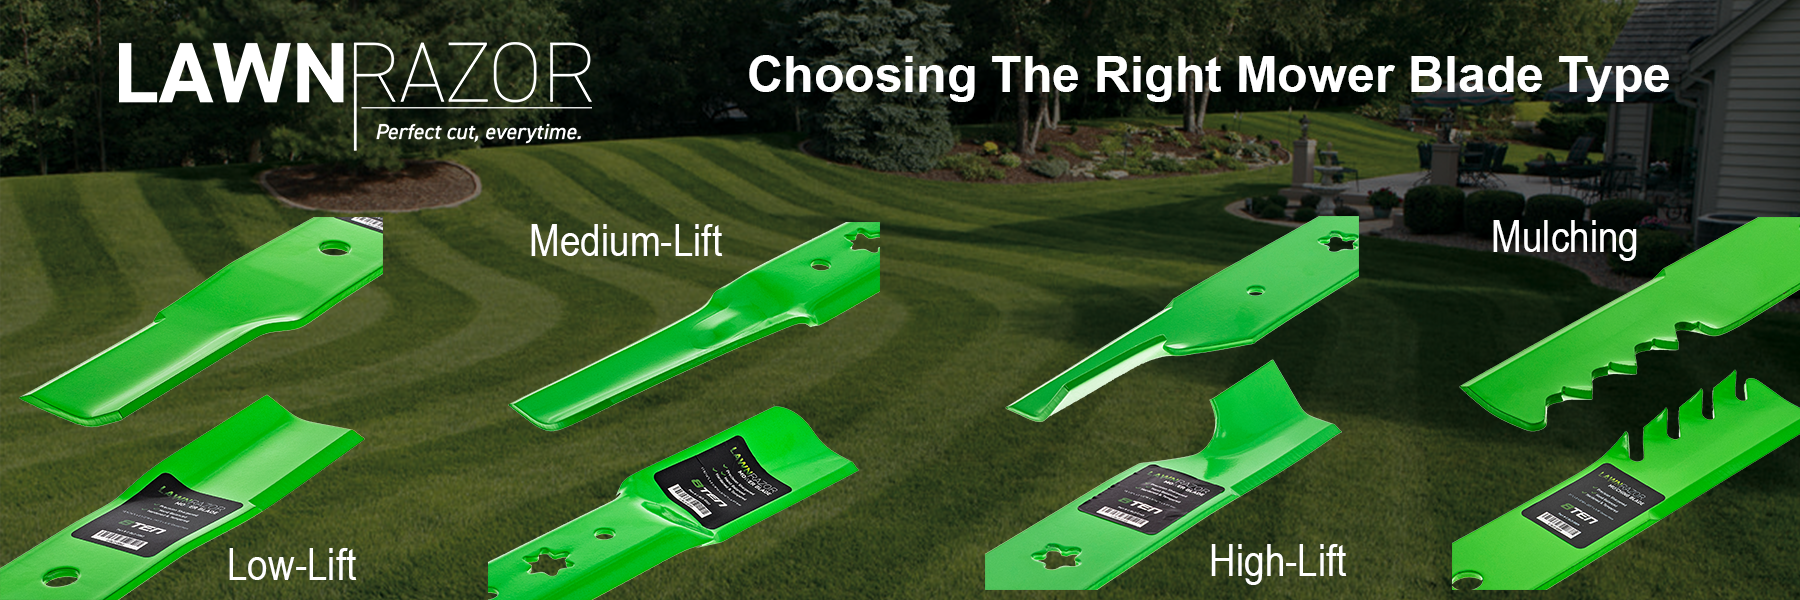 Choosing The Right Lawn Mower Blade Type